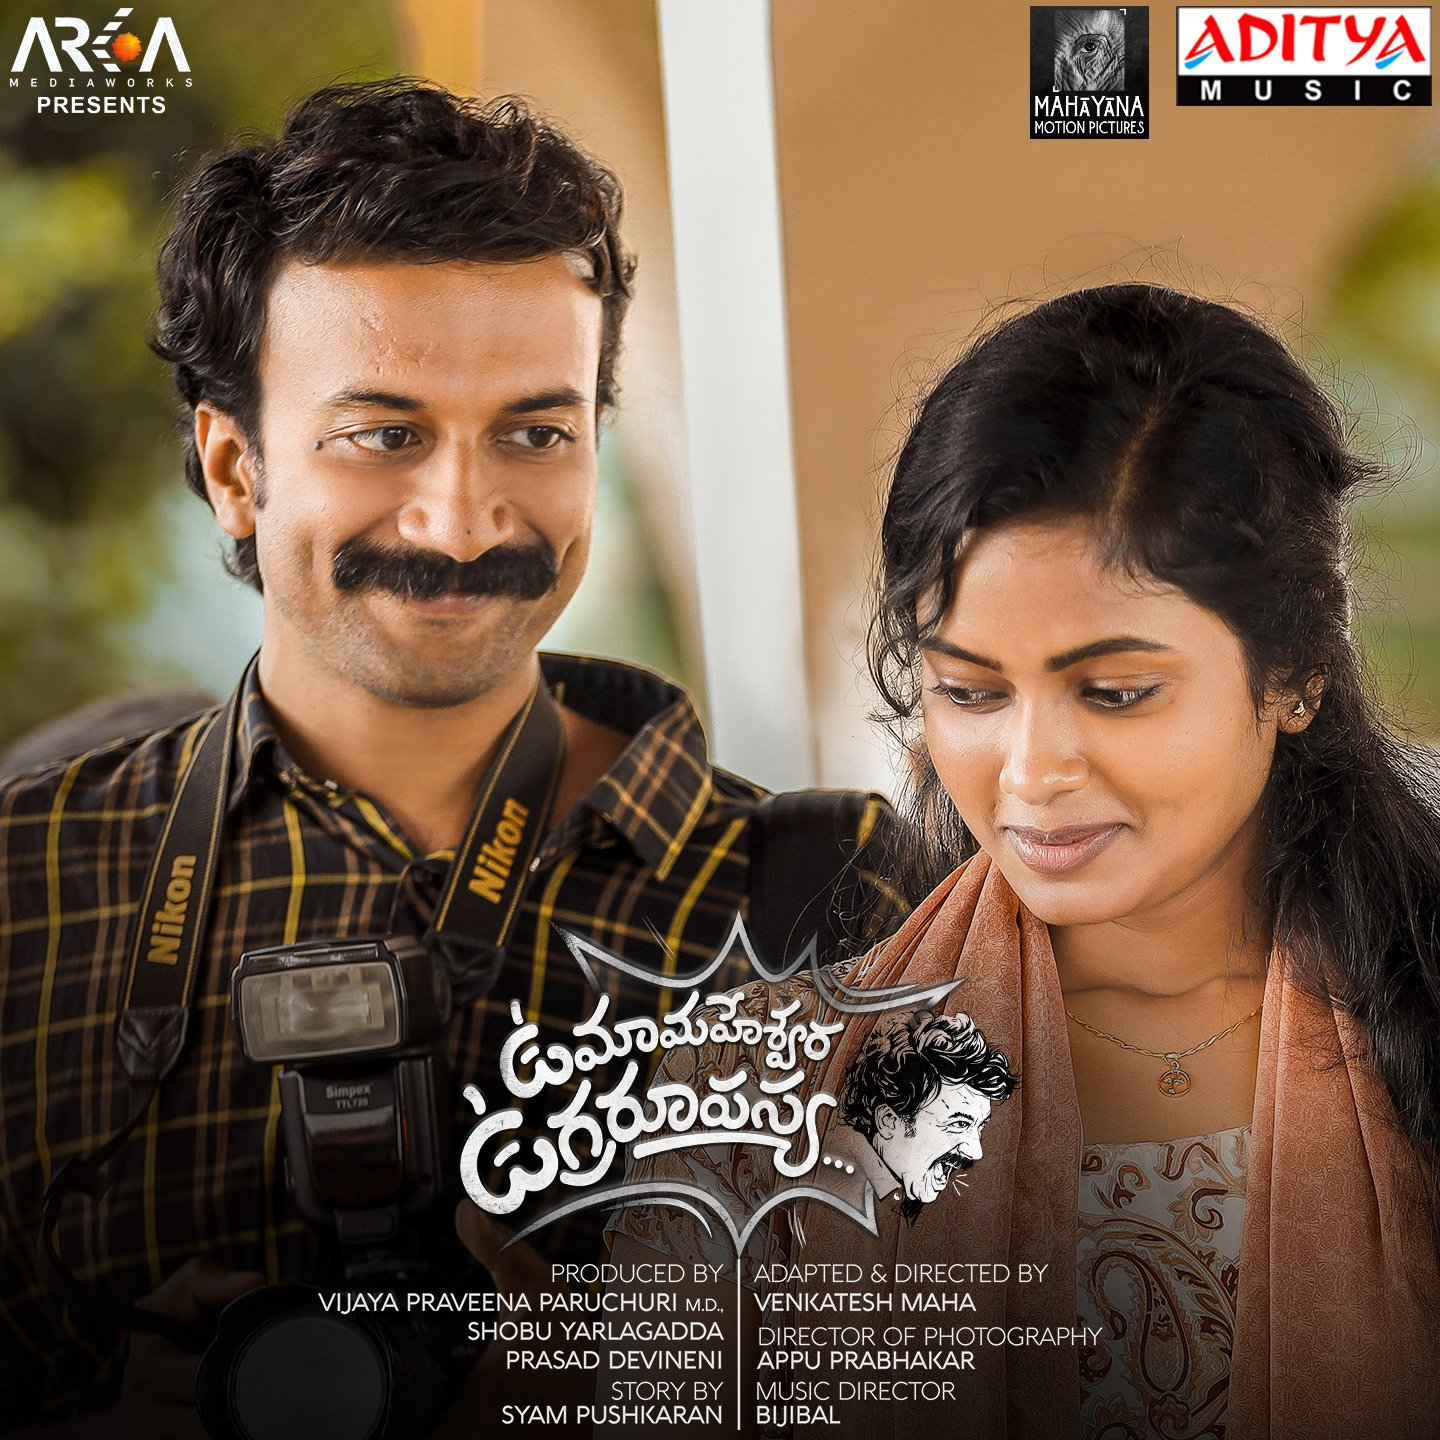 Uma Maheswara Ugra Roopasya 2020 Telugu 720p HDRip ESub 1.5GB Download